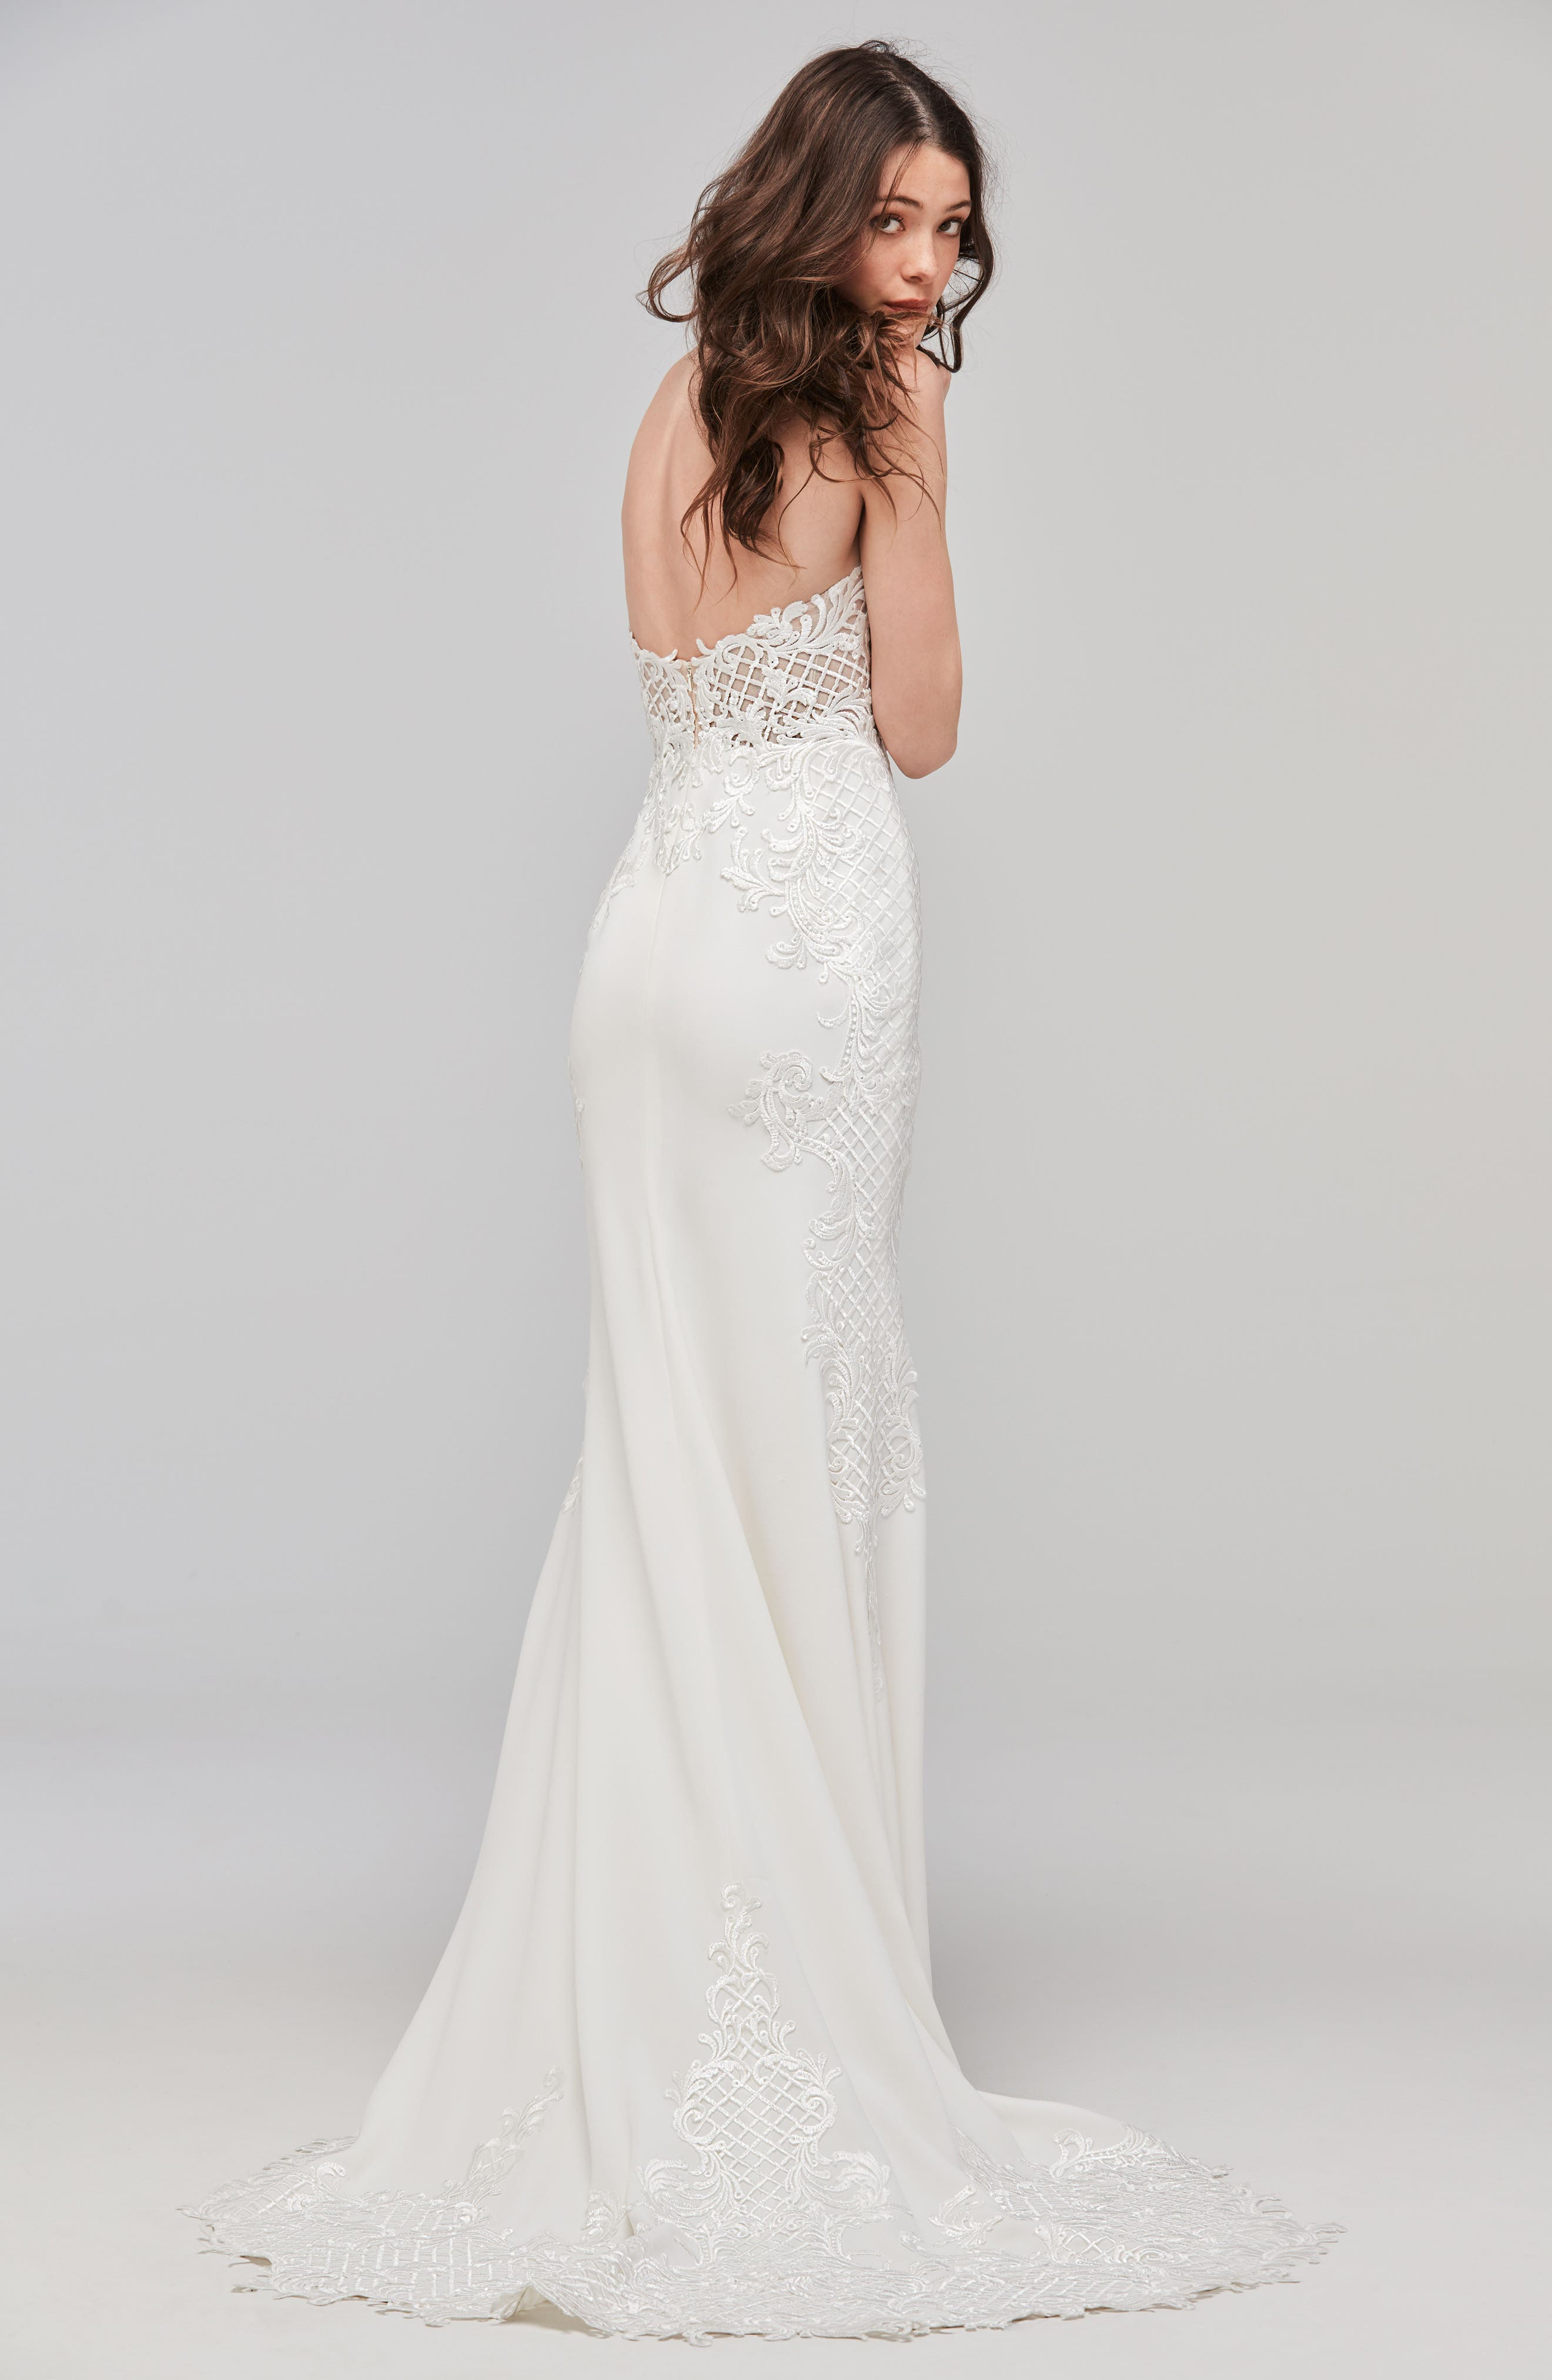 Haizea Strapless Lace & Crepe Gown,                             Alternate thumbnail 2, color,                             Ivory